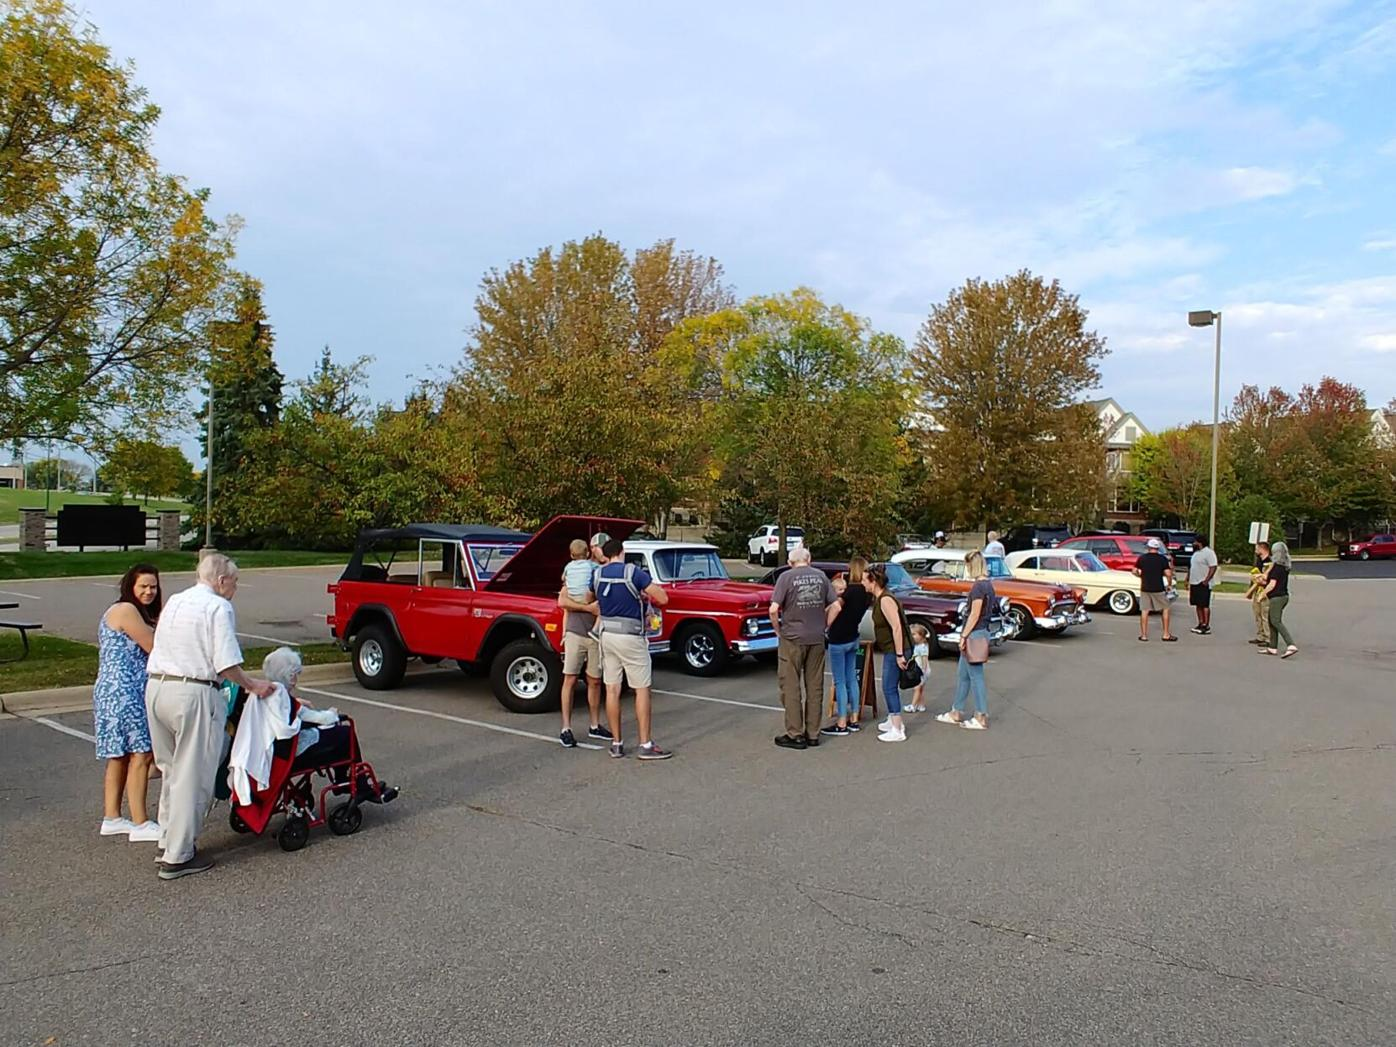 Residents, Families, and Community Members alike enjoyed viewing the classic cars on display.